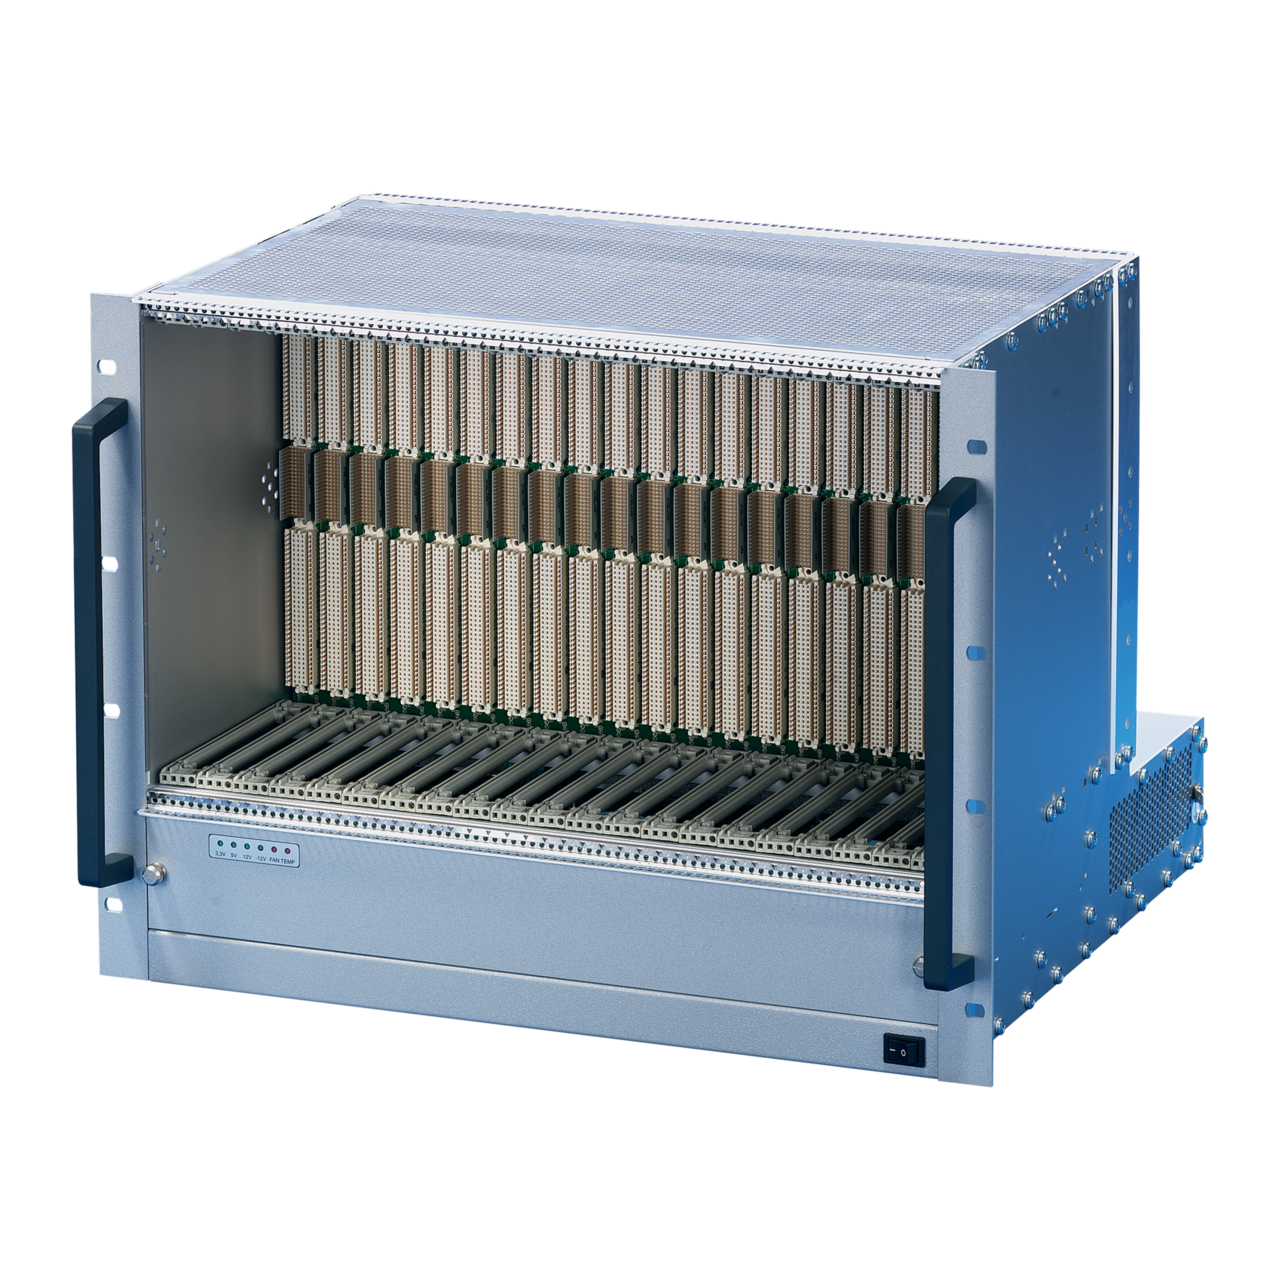 Image for VME64x-based systems 8 U, 21 slot, with rear I/O from nVent SCHROFF | Europe, Middle East, Africa and India